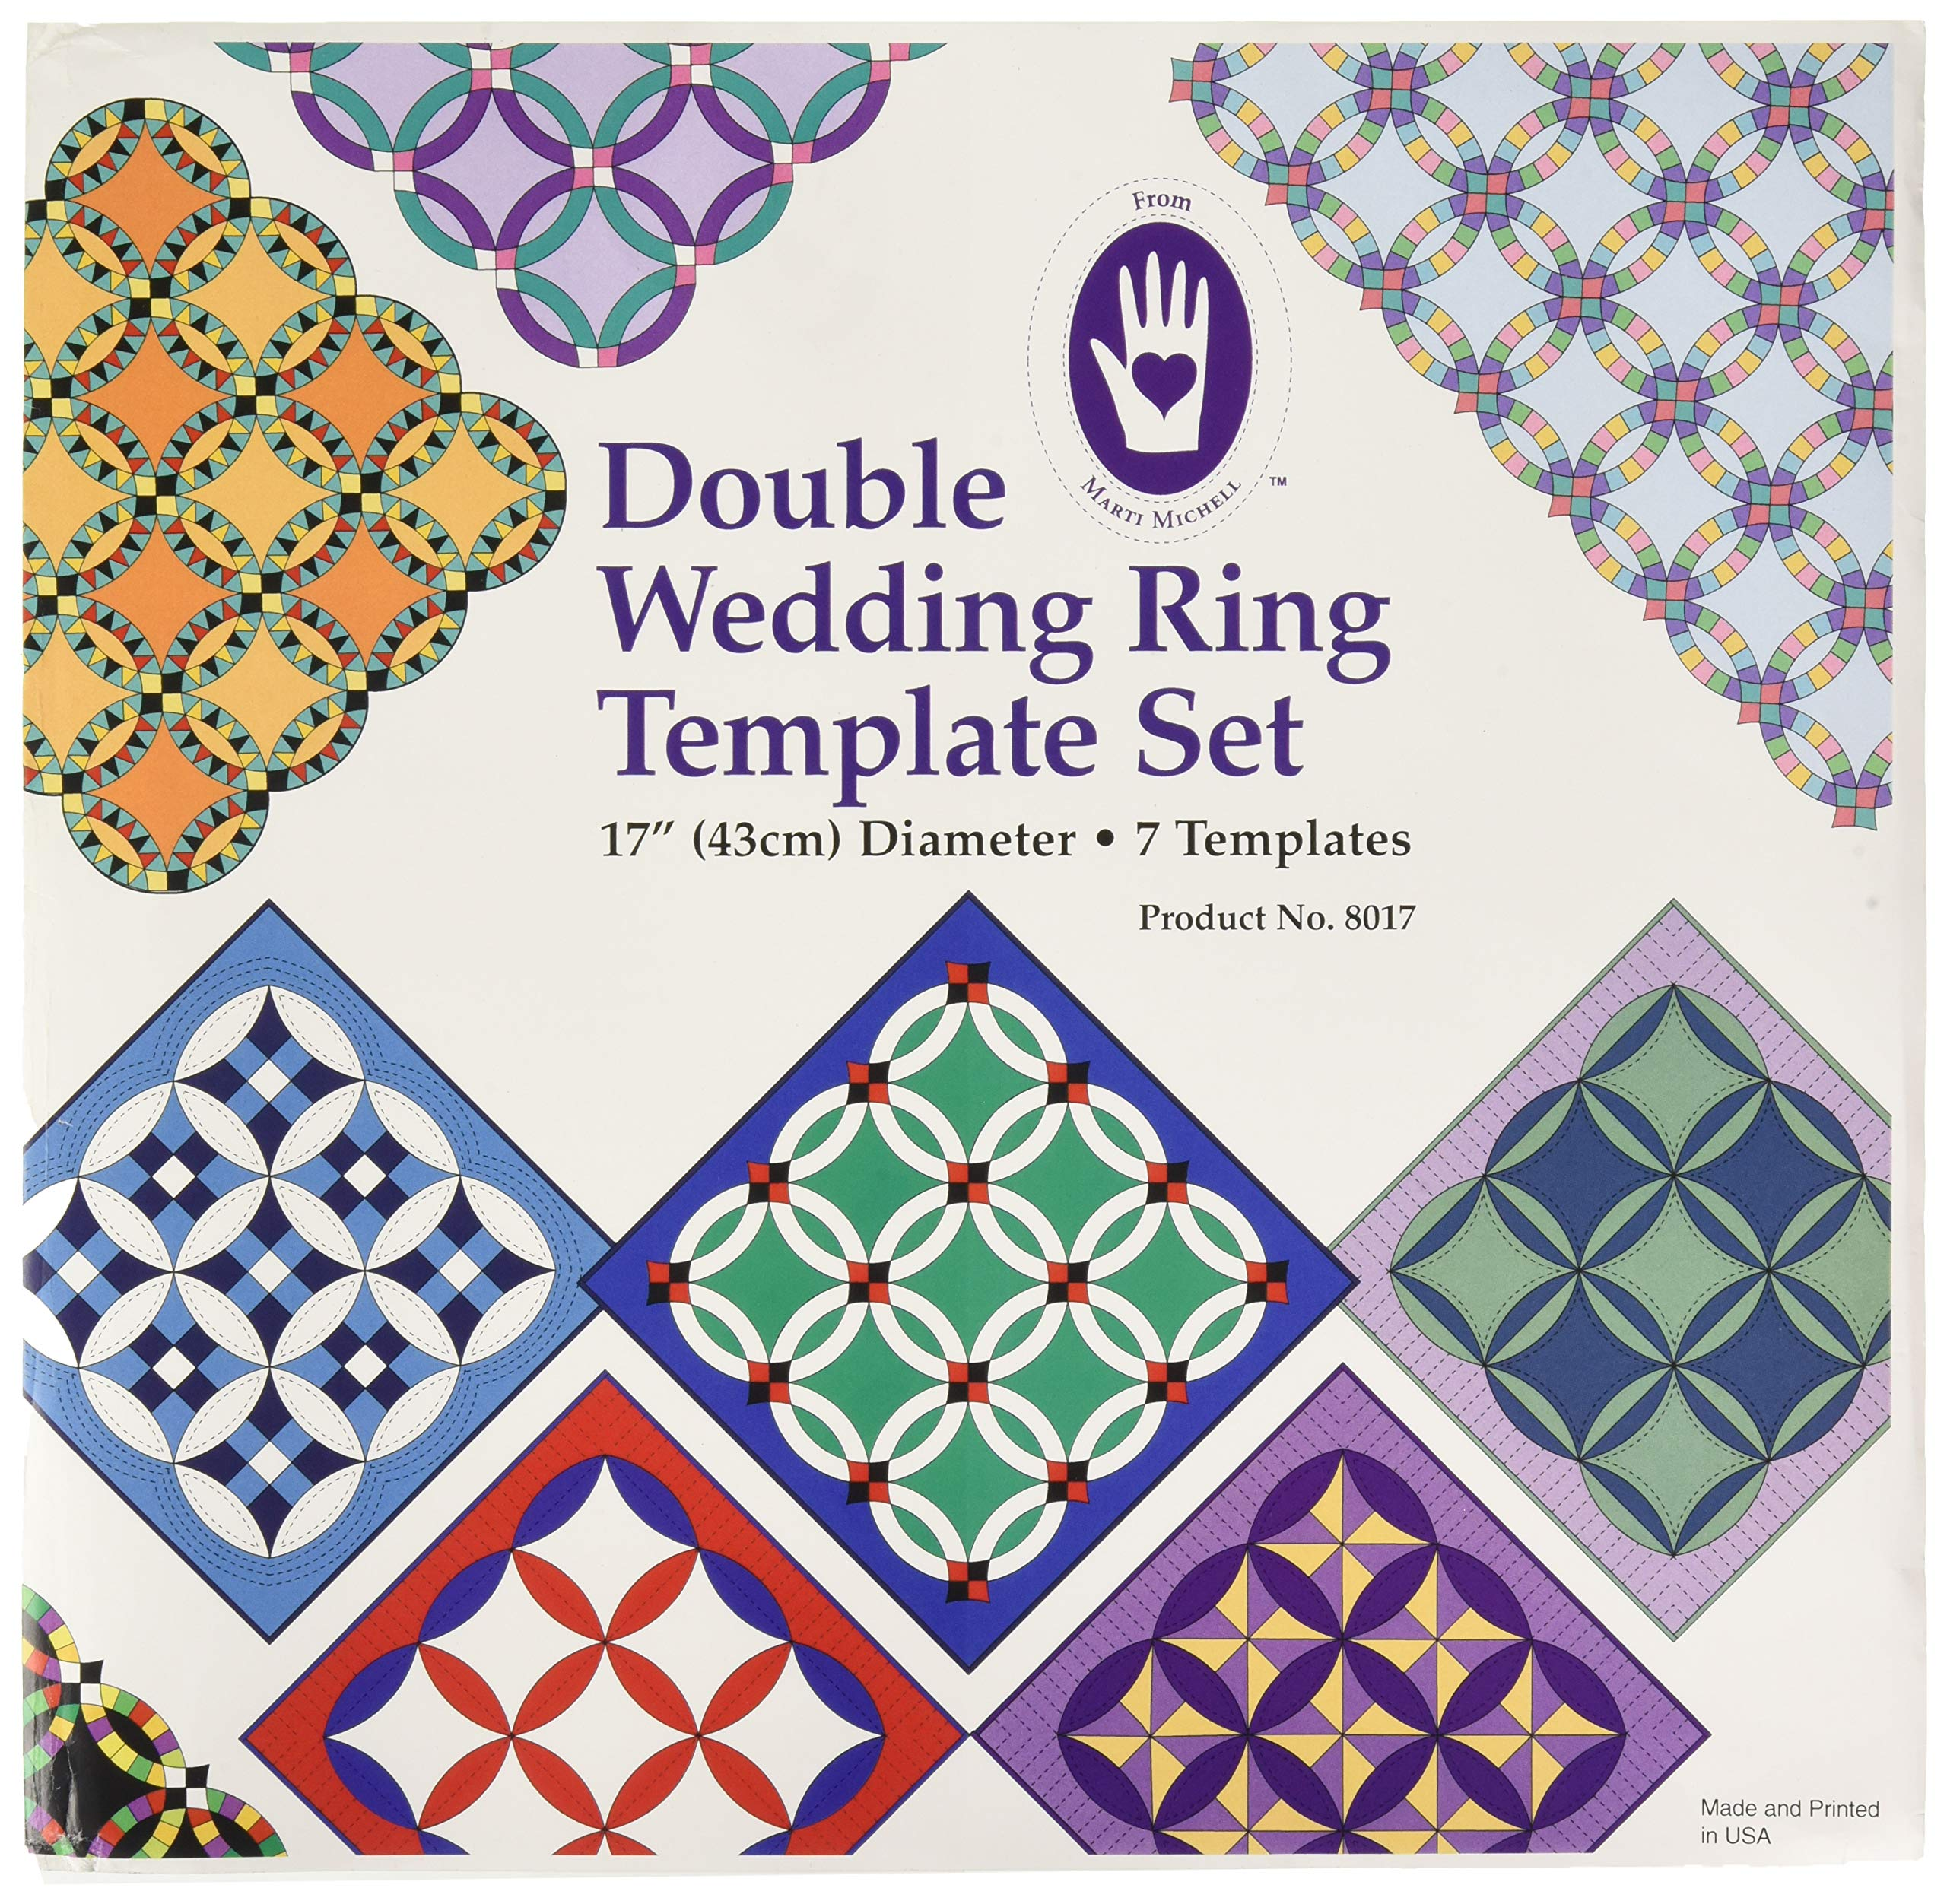 Marti Michell 4336997437 Double Wedding Ring Template by Marti Michell